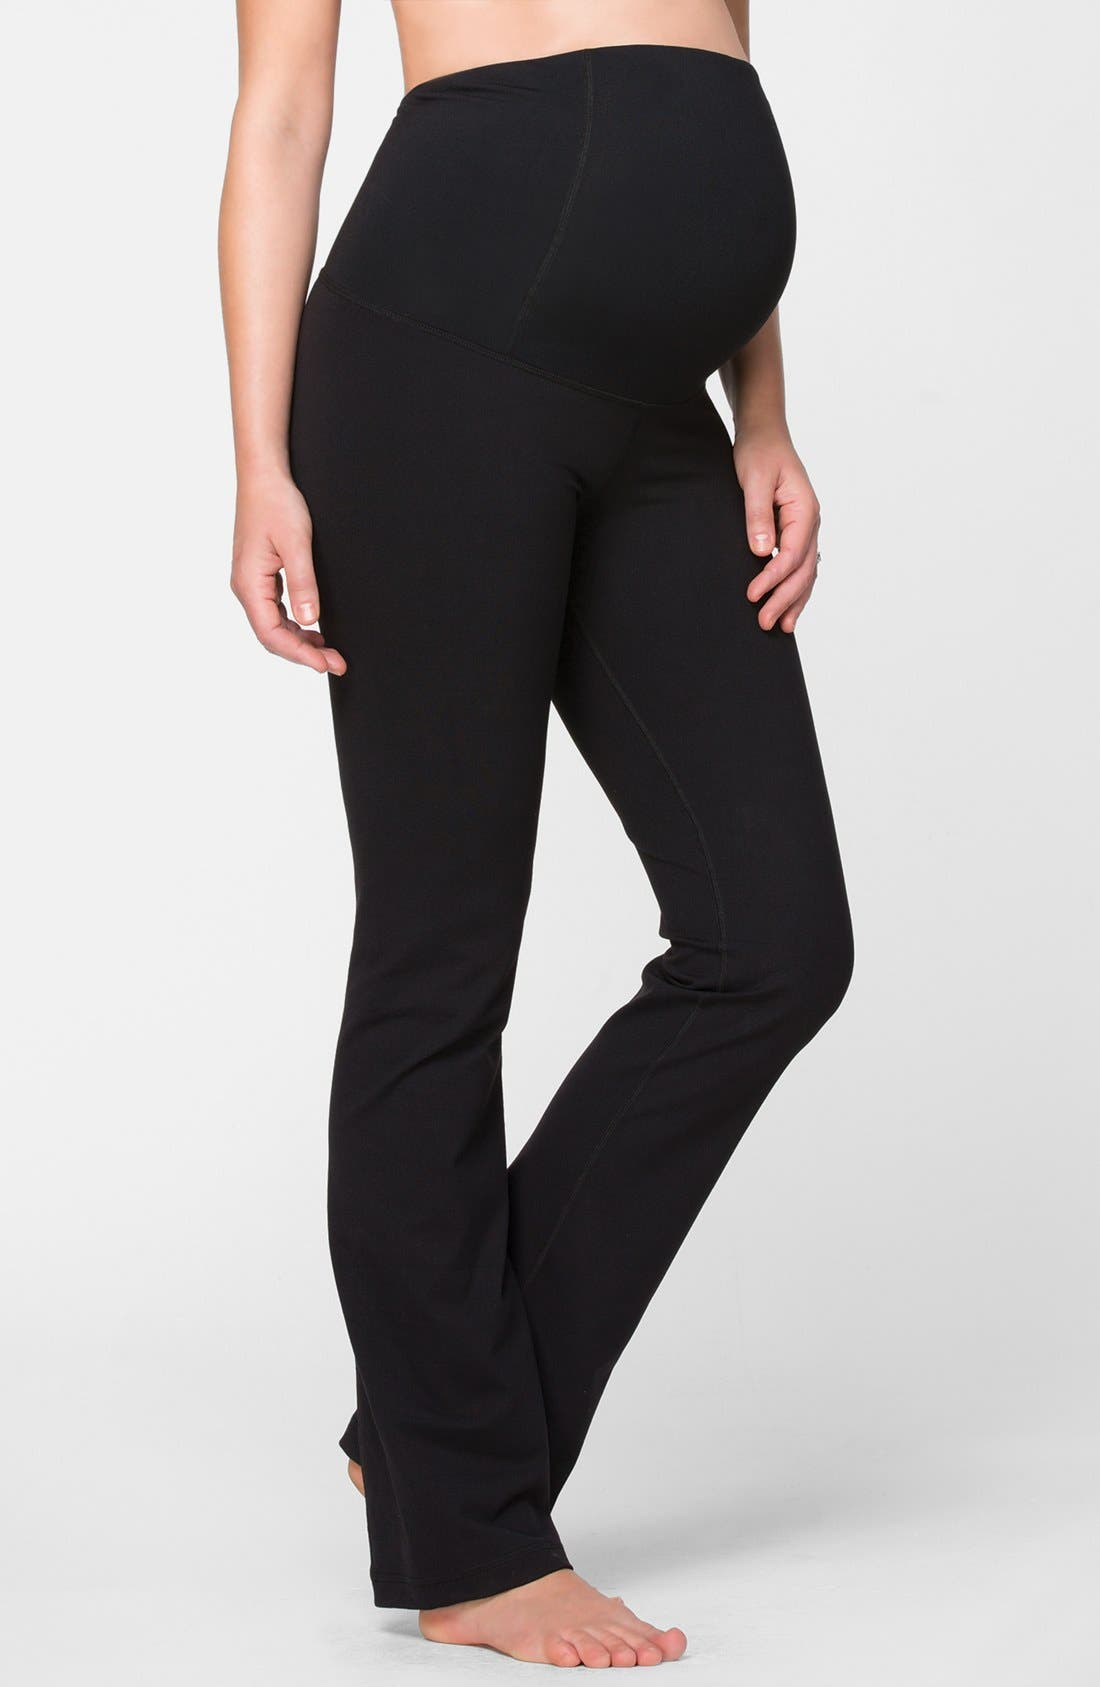 Active Maternity Pants with Crossover Panel,                             Main thumbnail 1, color,                             001